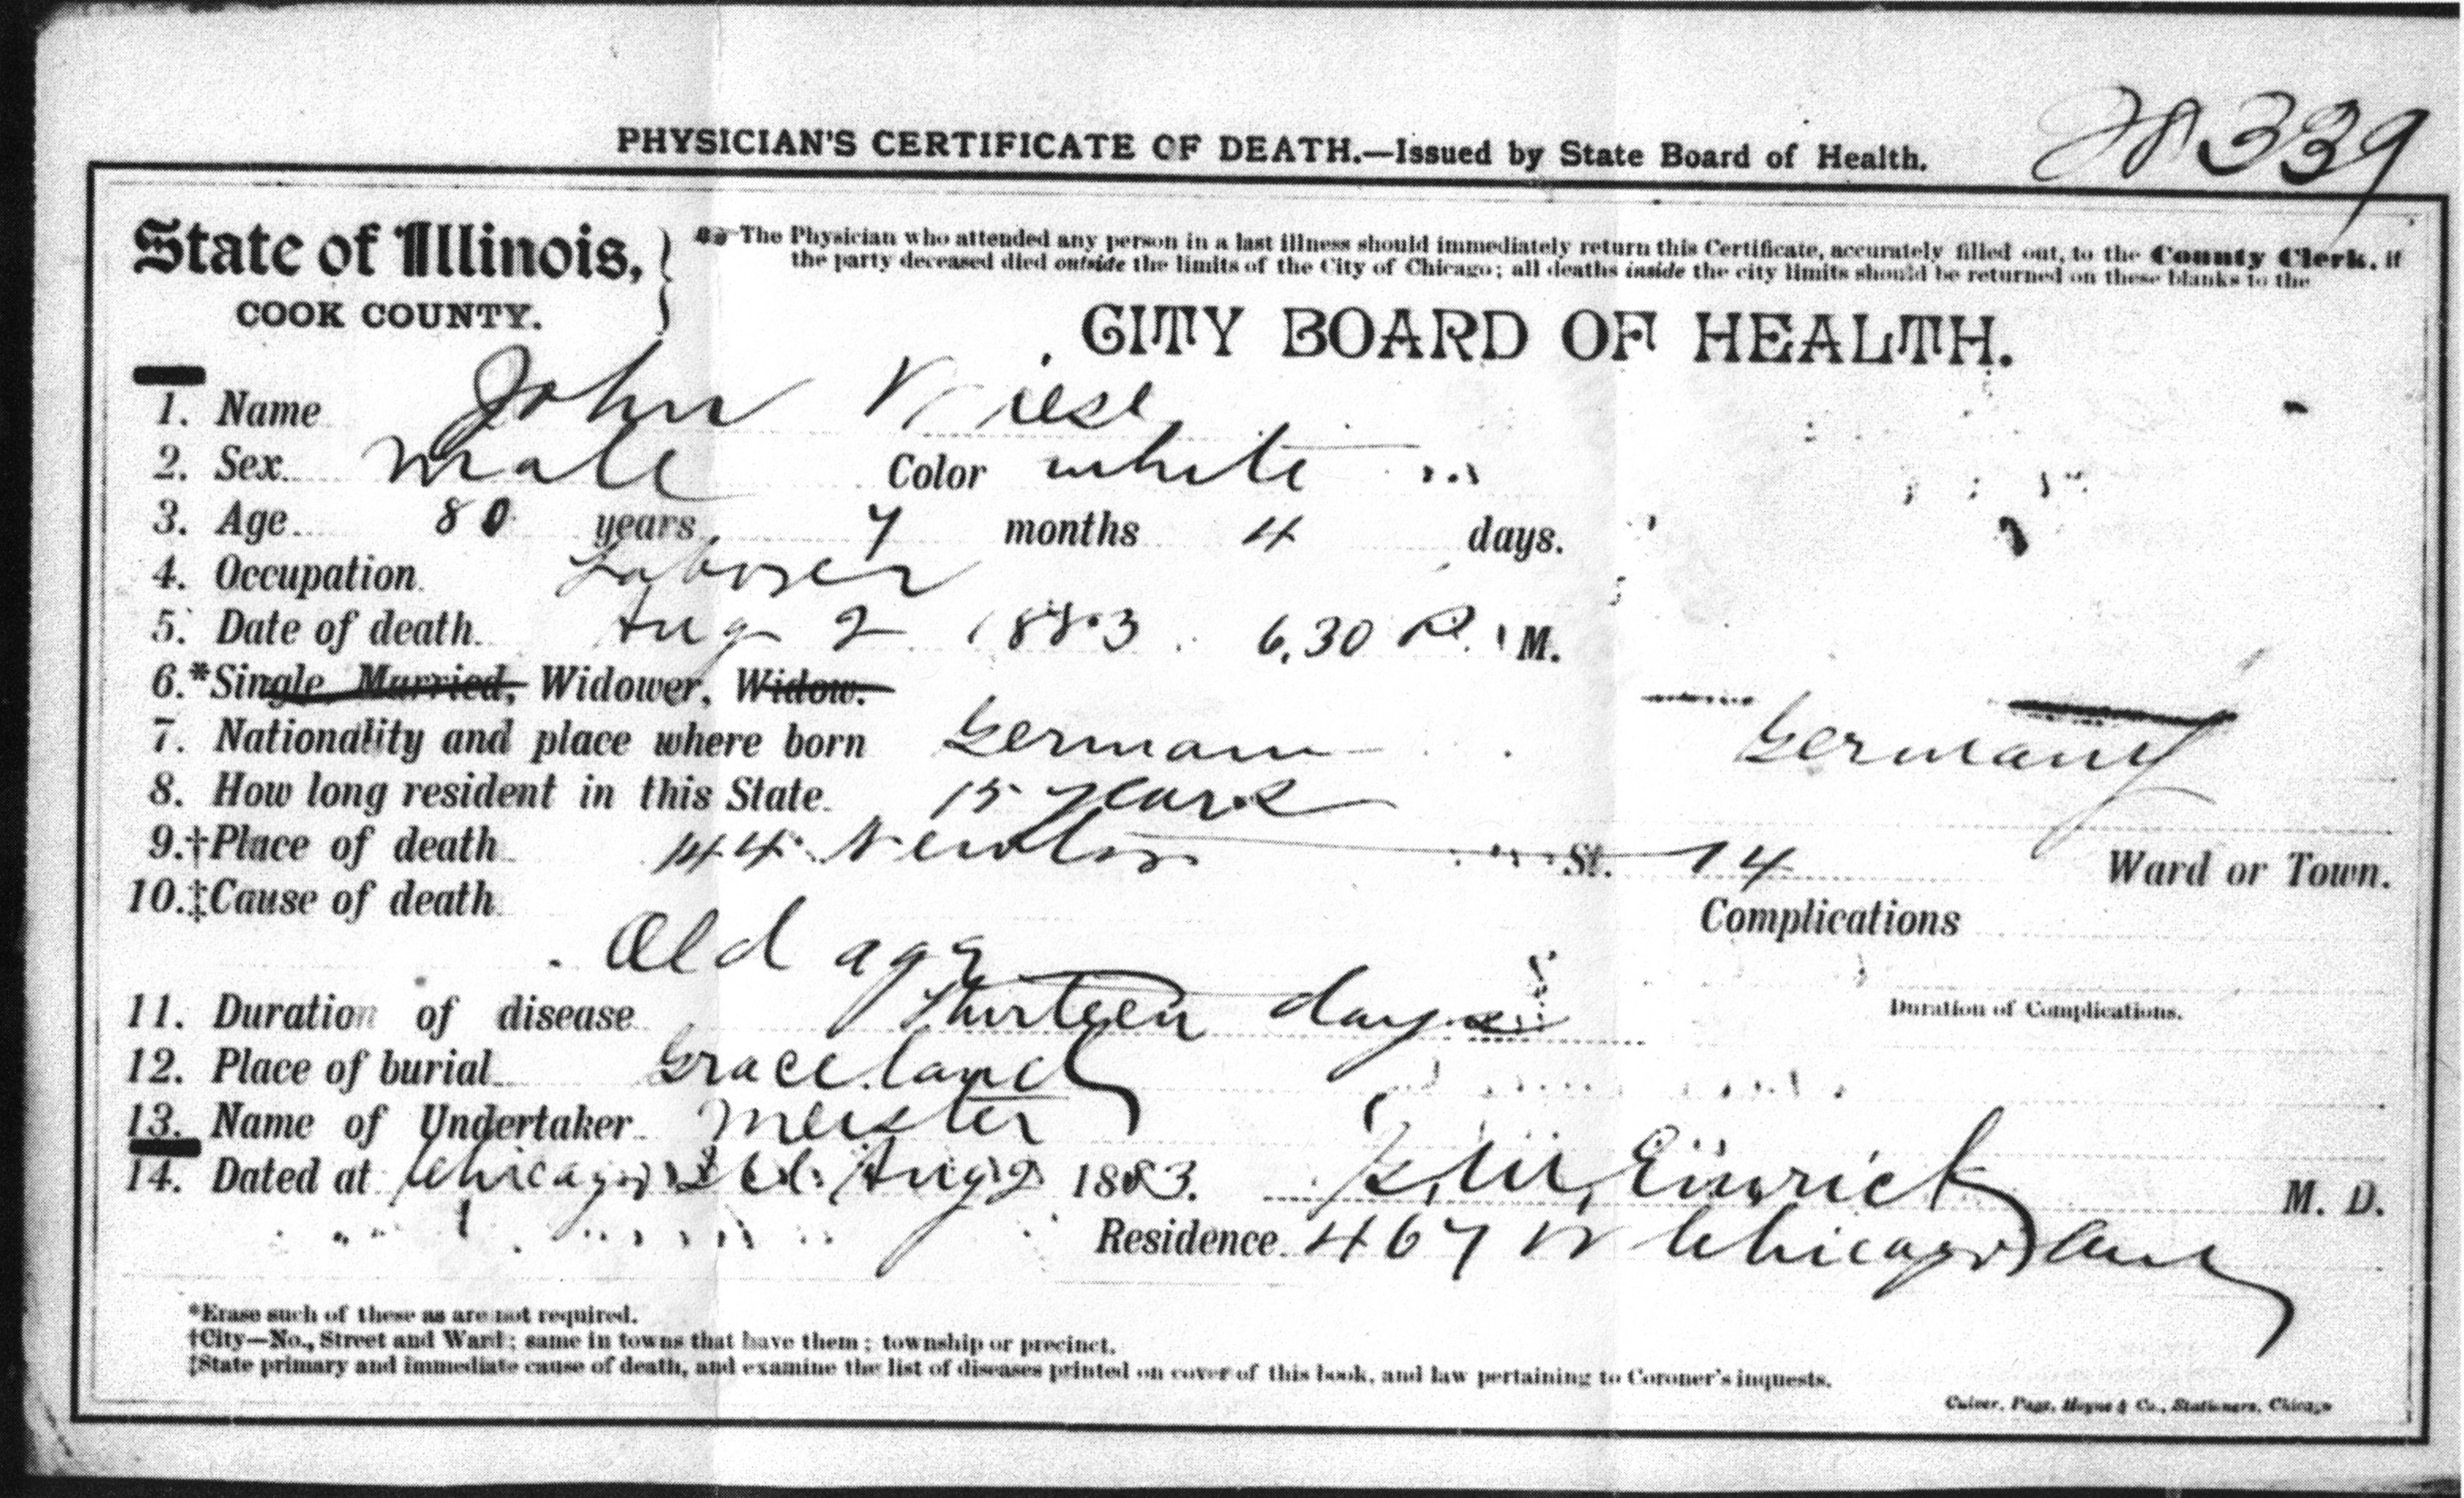 Johann wiese and a dna connection homestead genealogical research cook county illinois death certificate no 28339 john wiese cook county clerk chicago aiddatafo Gallery